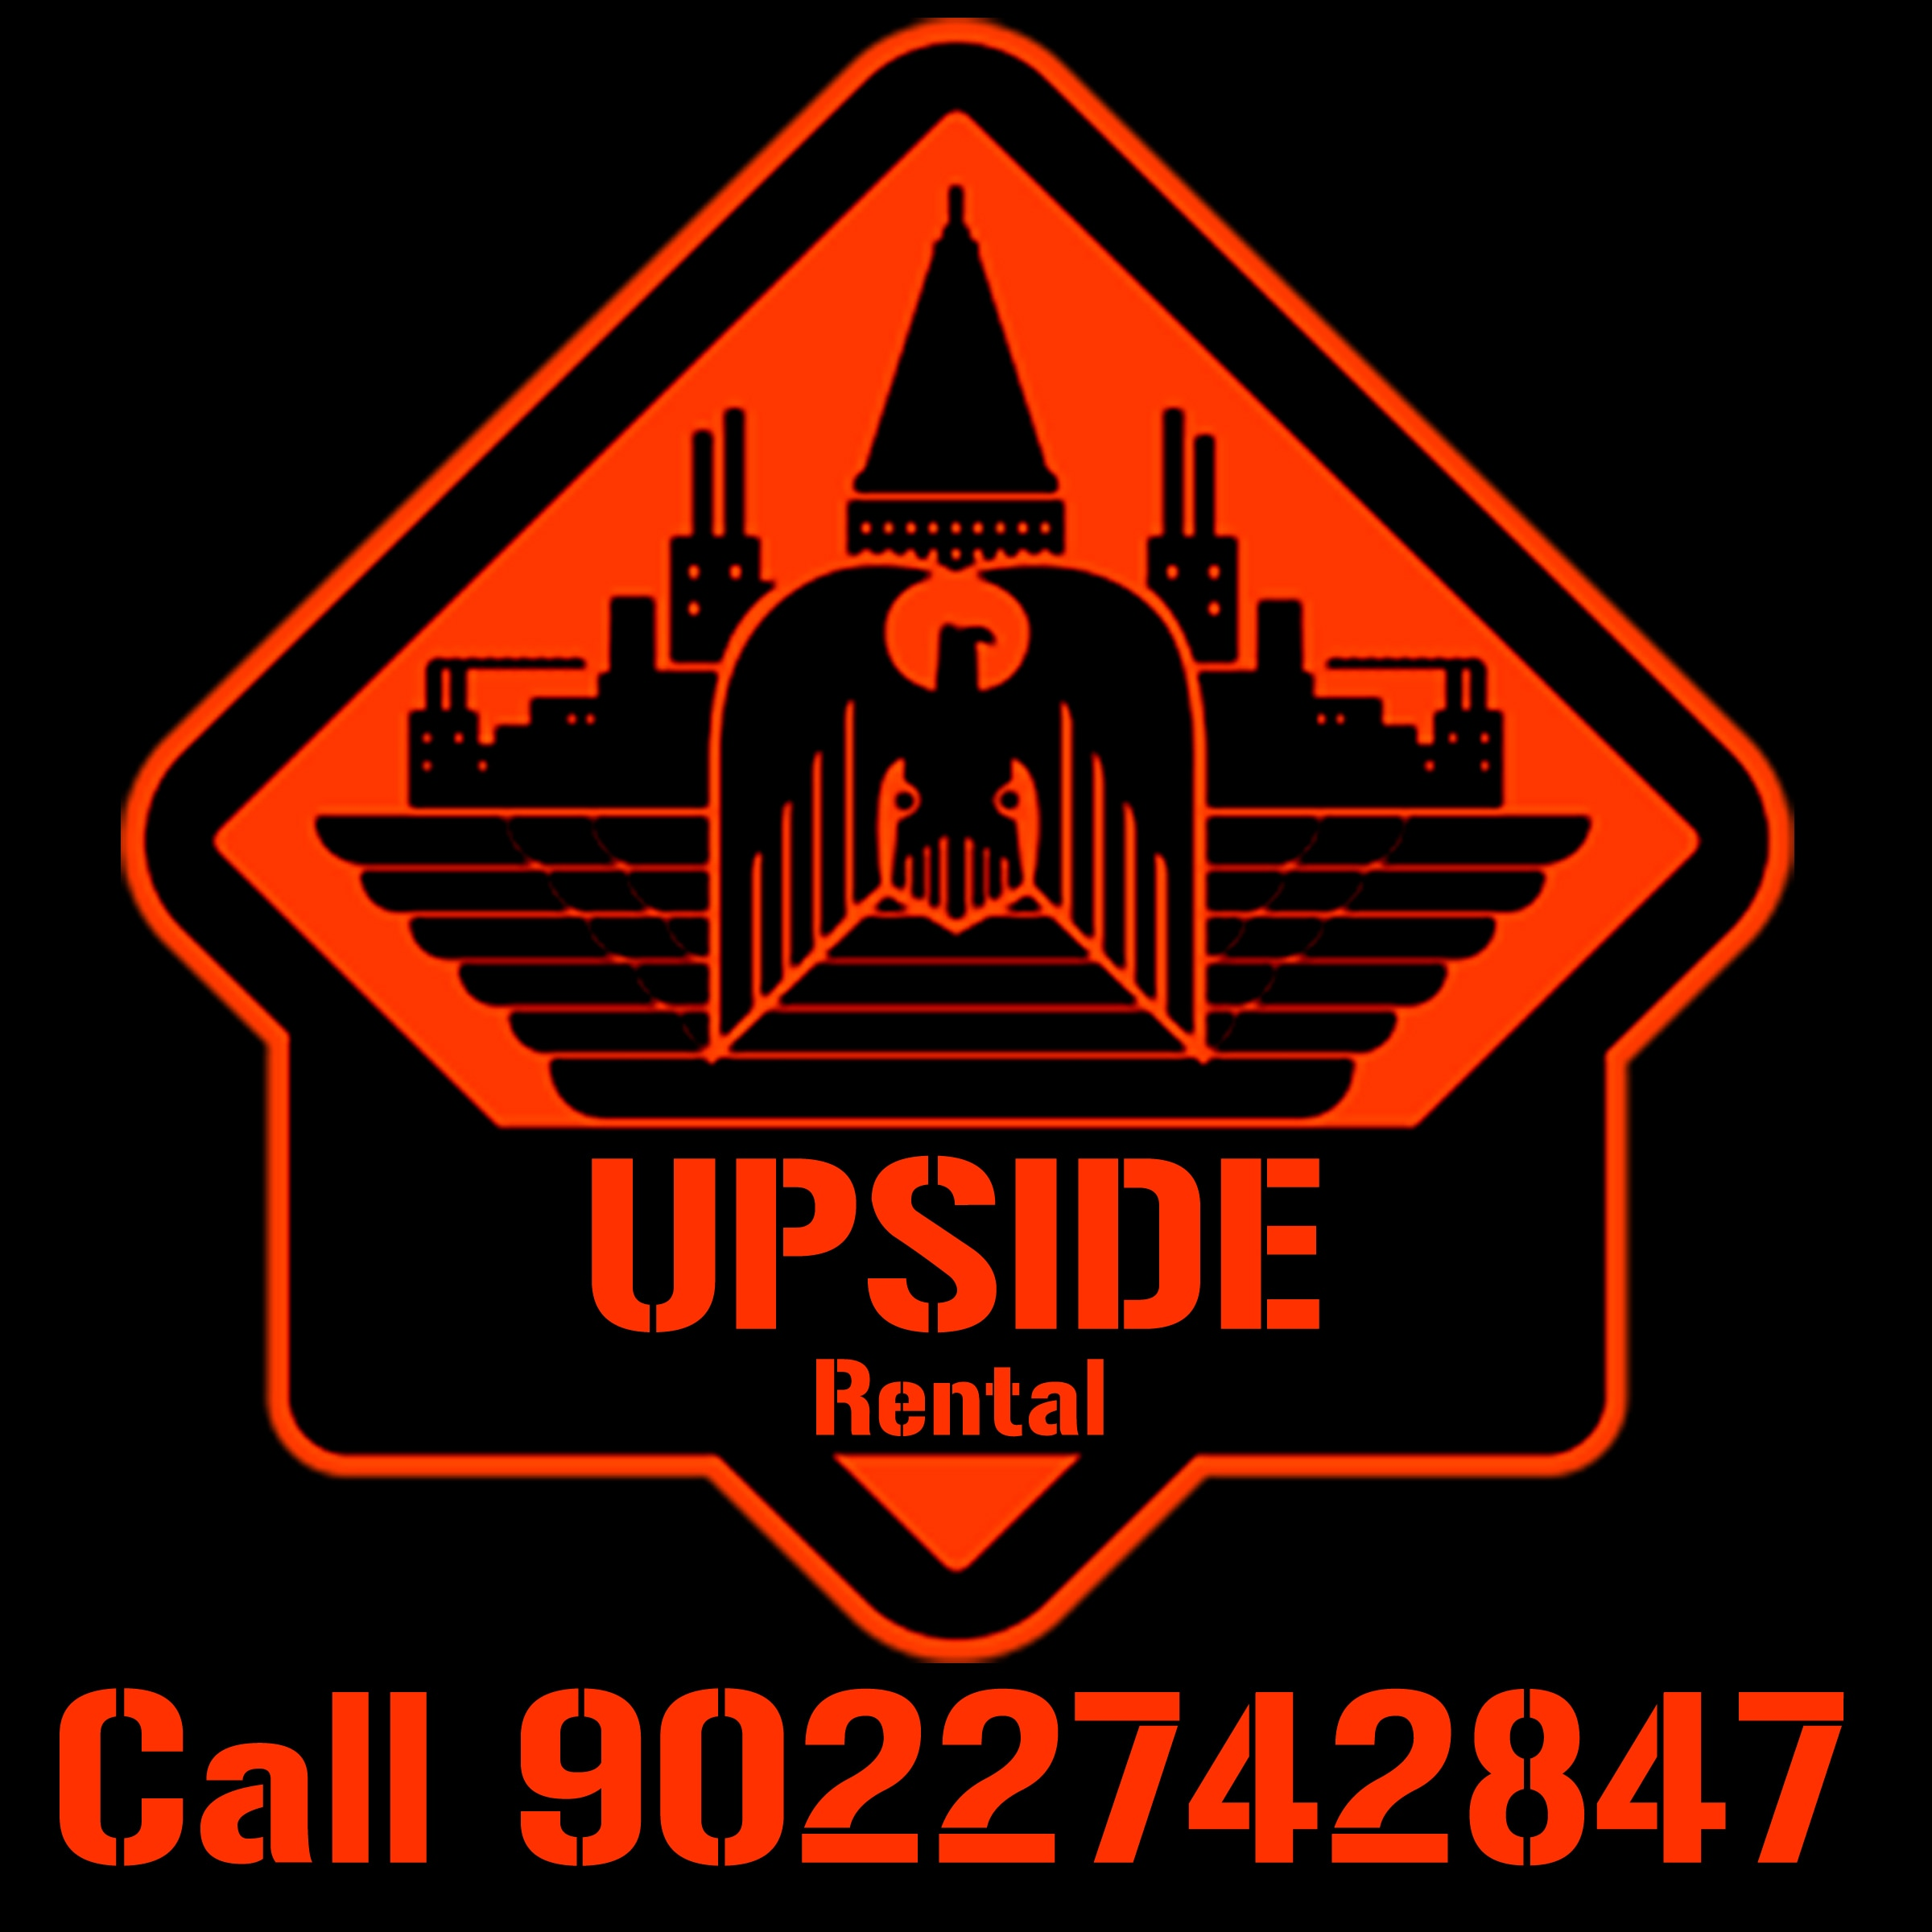 Logo of Upside